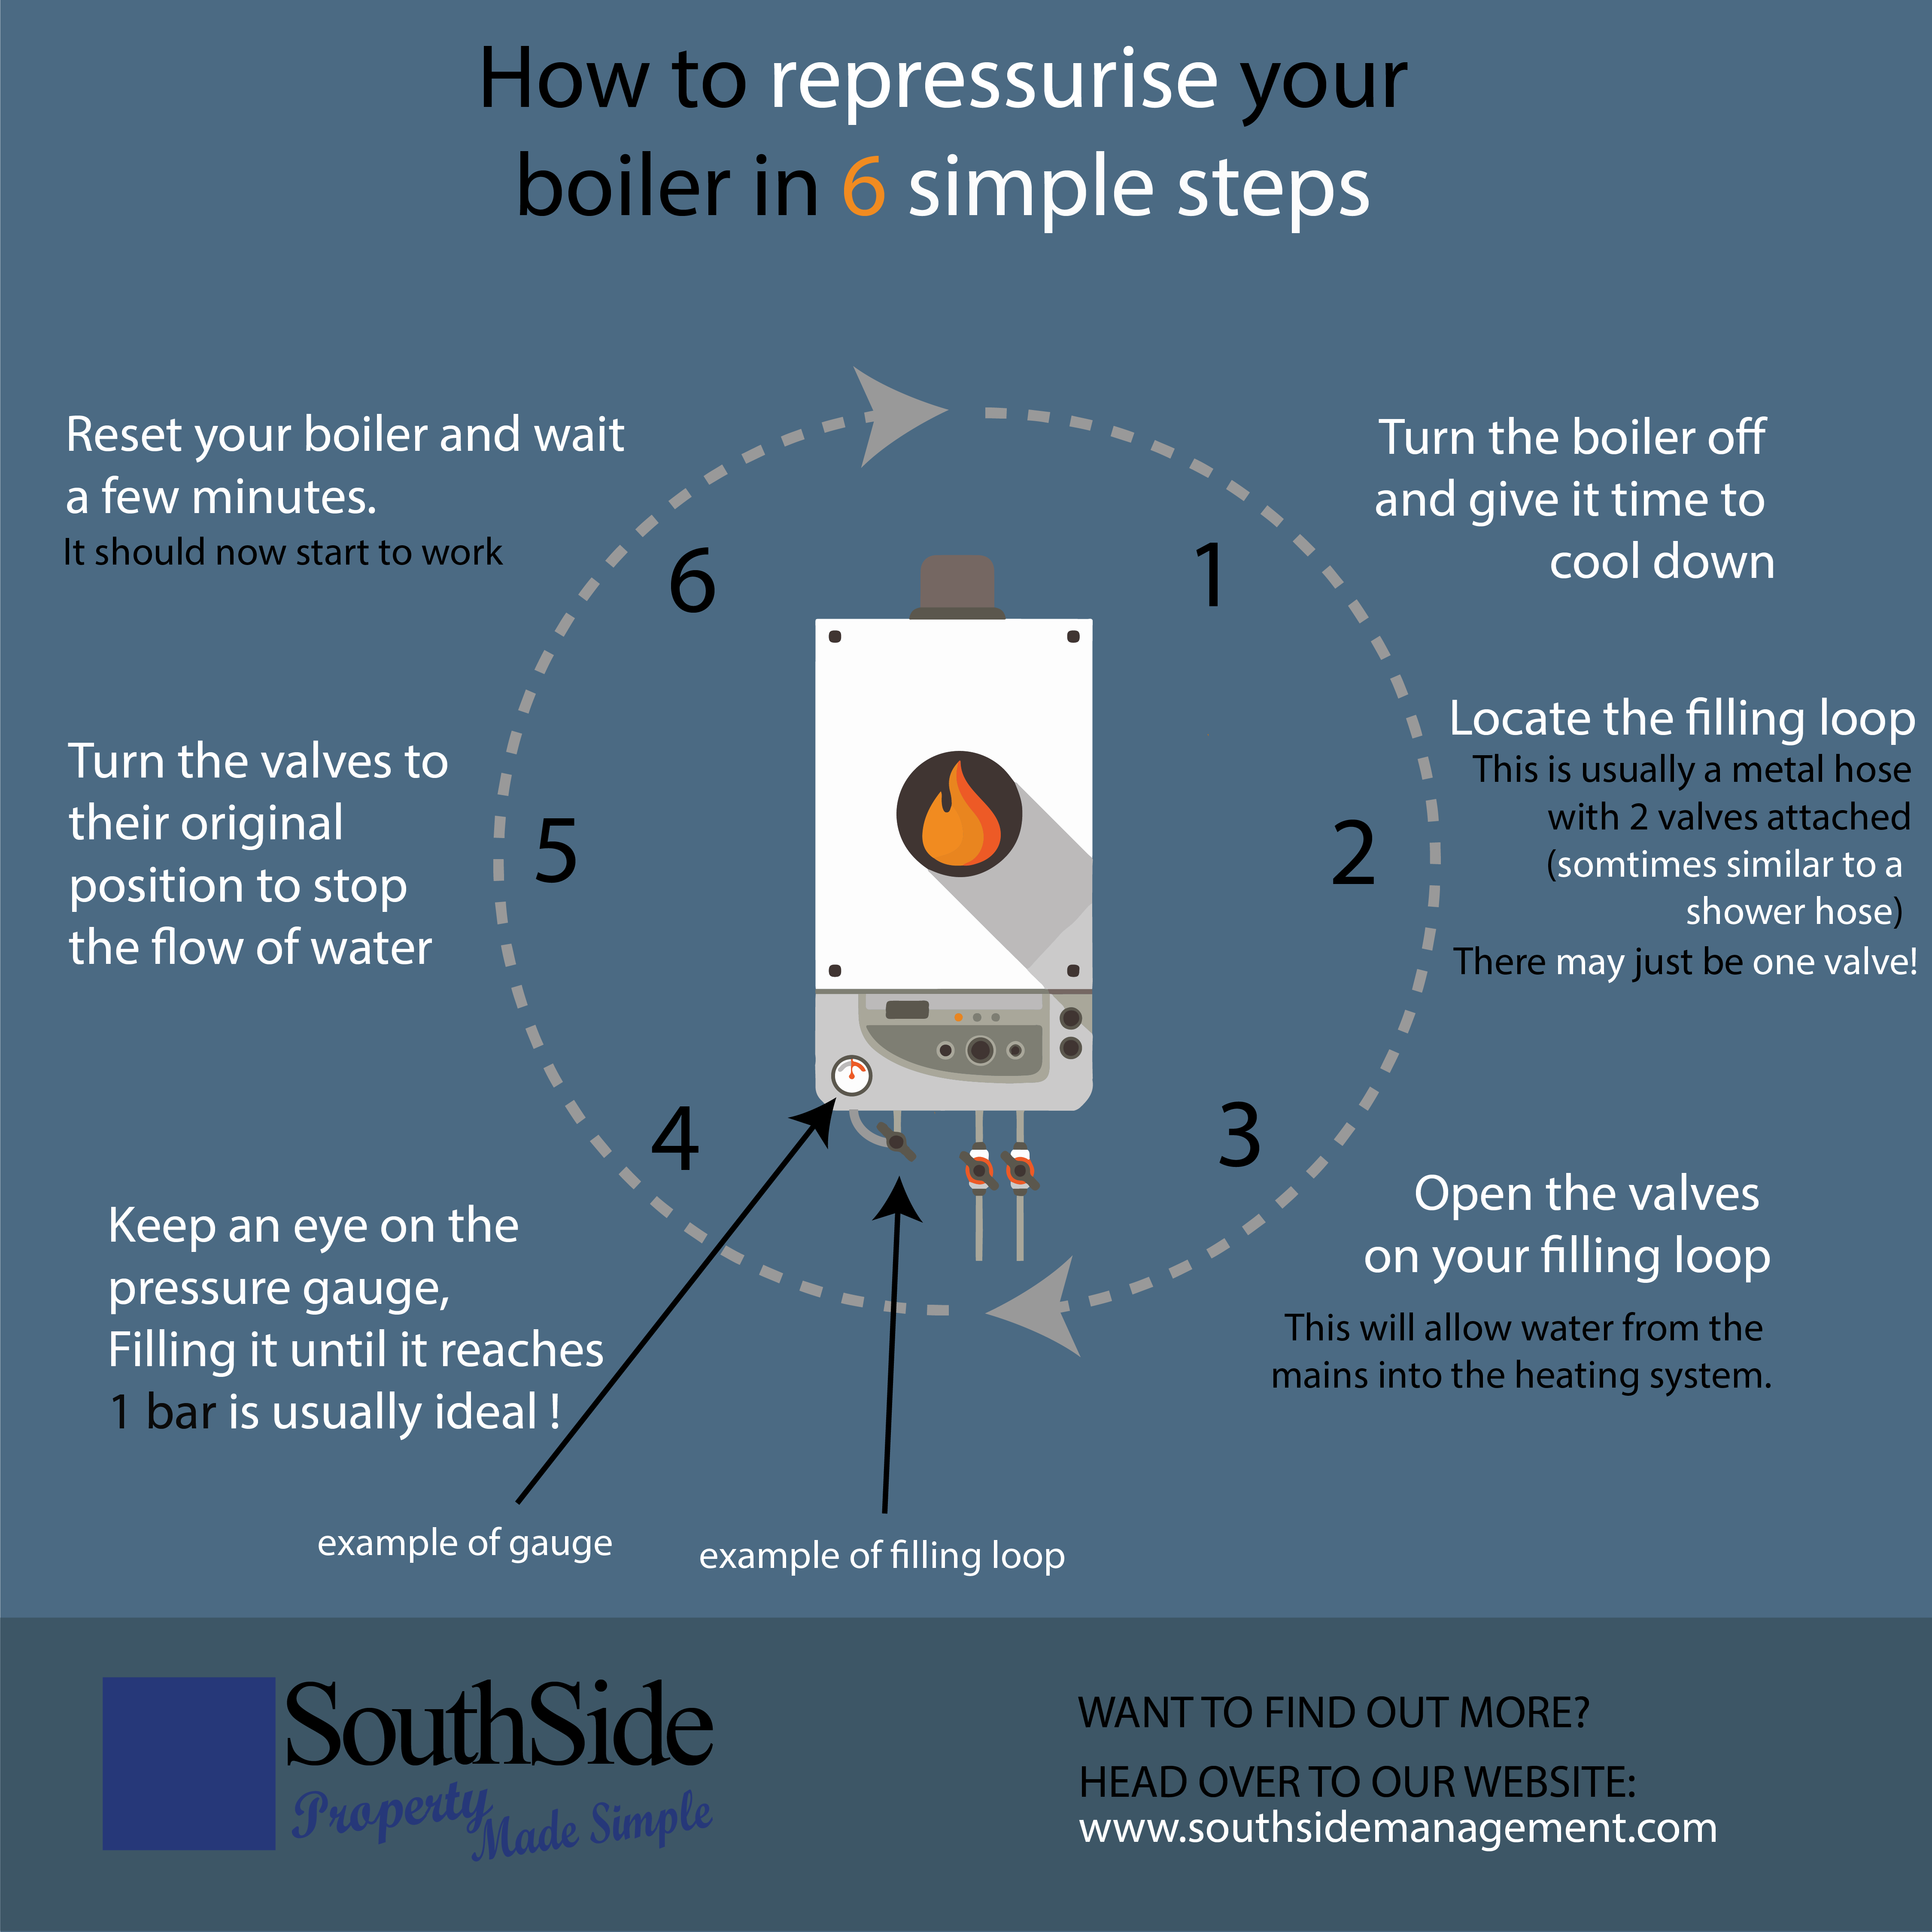 HOW TO REPRESSURISE YOUR BOILER